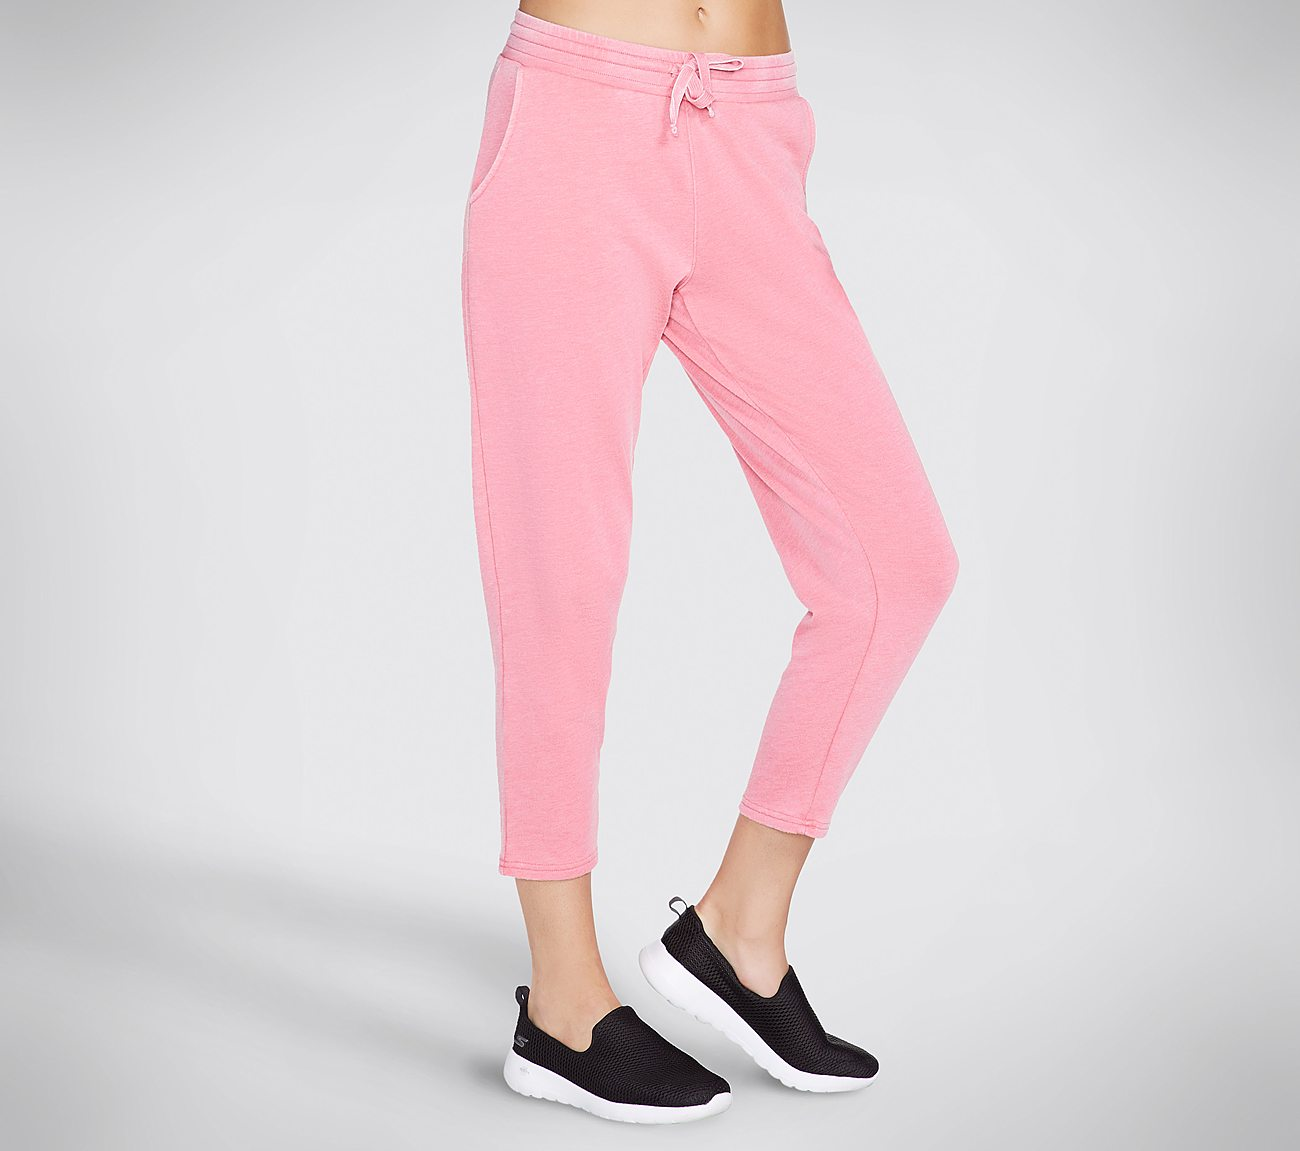 Skechers Apparel Washed Terry Pant